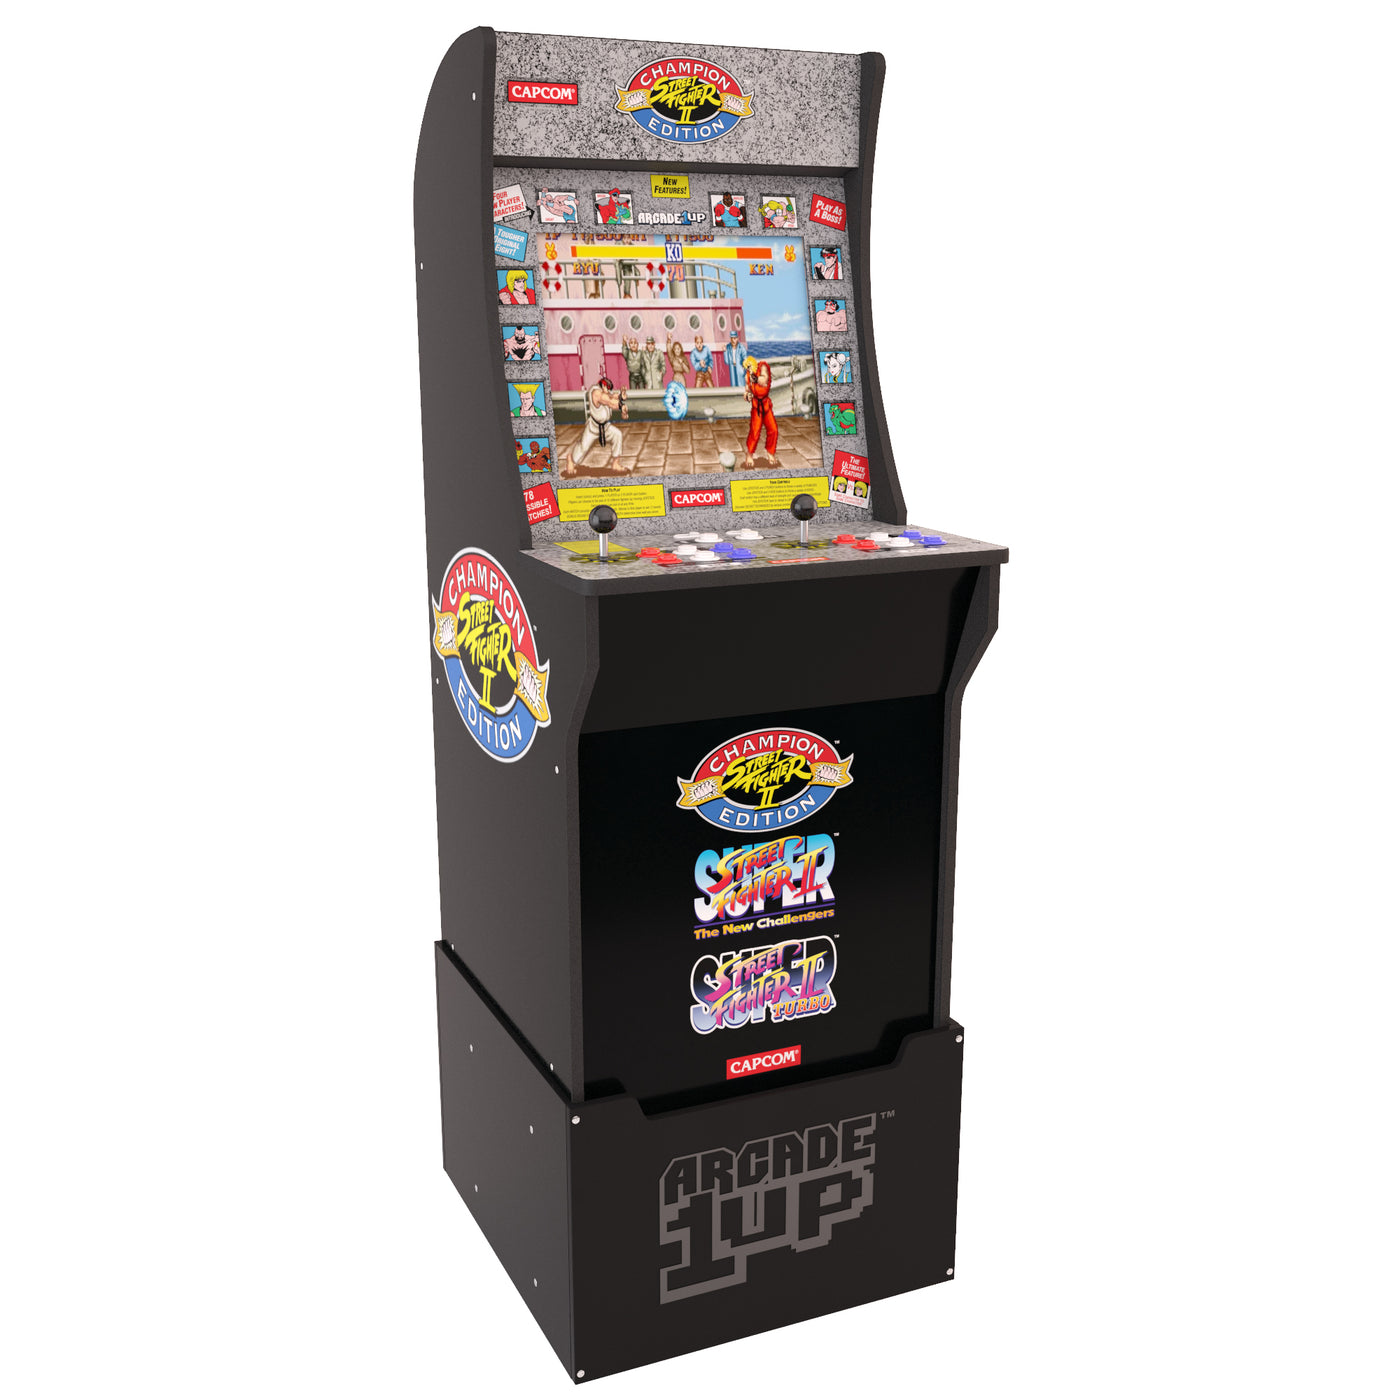 Arcade1up Street Fighter Arcade Cabinet With Riser The Brick